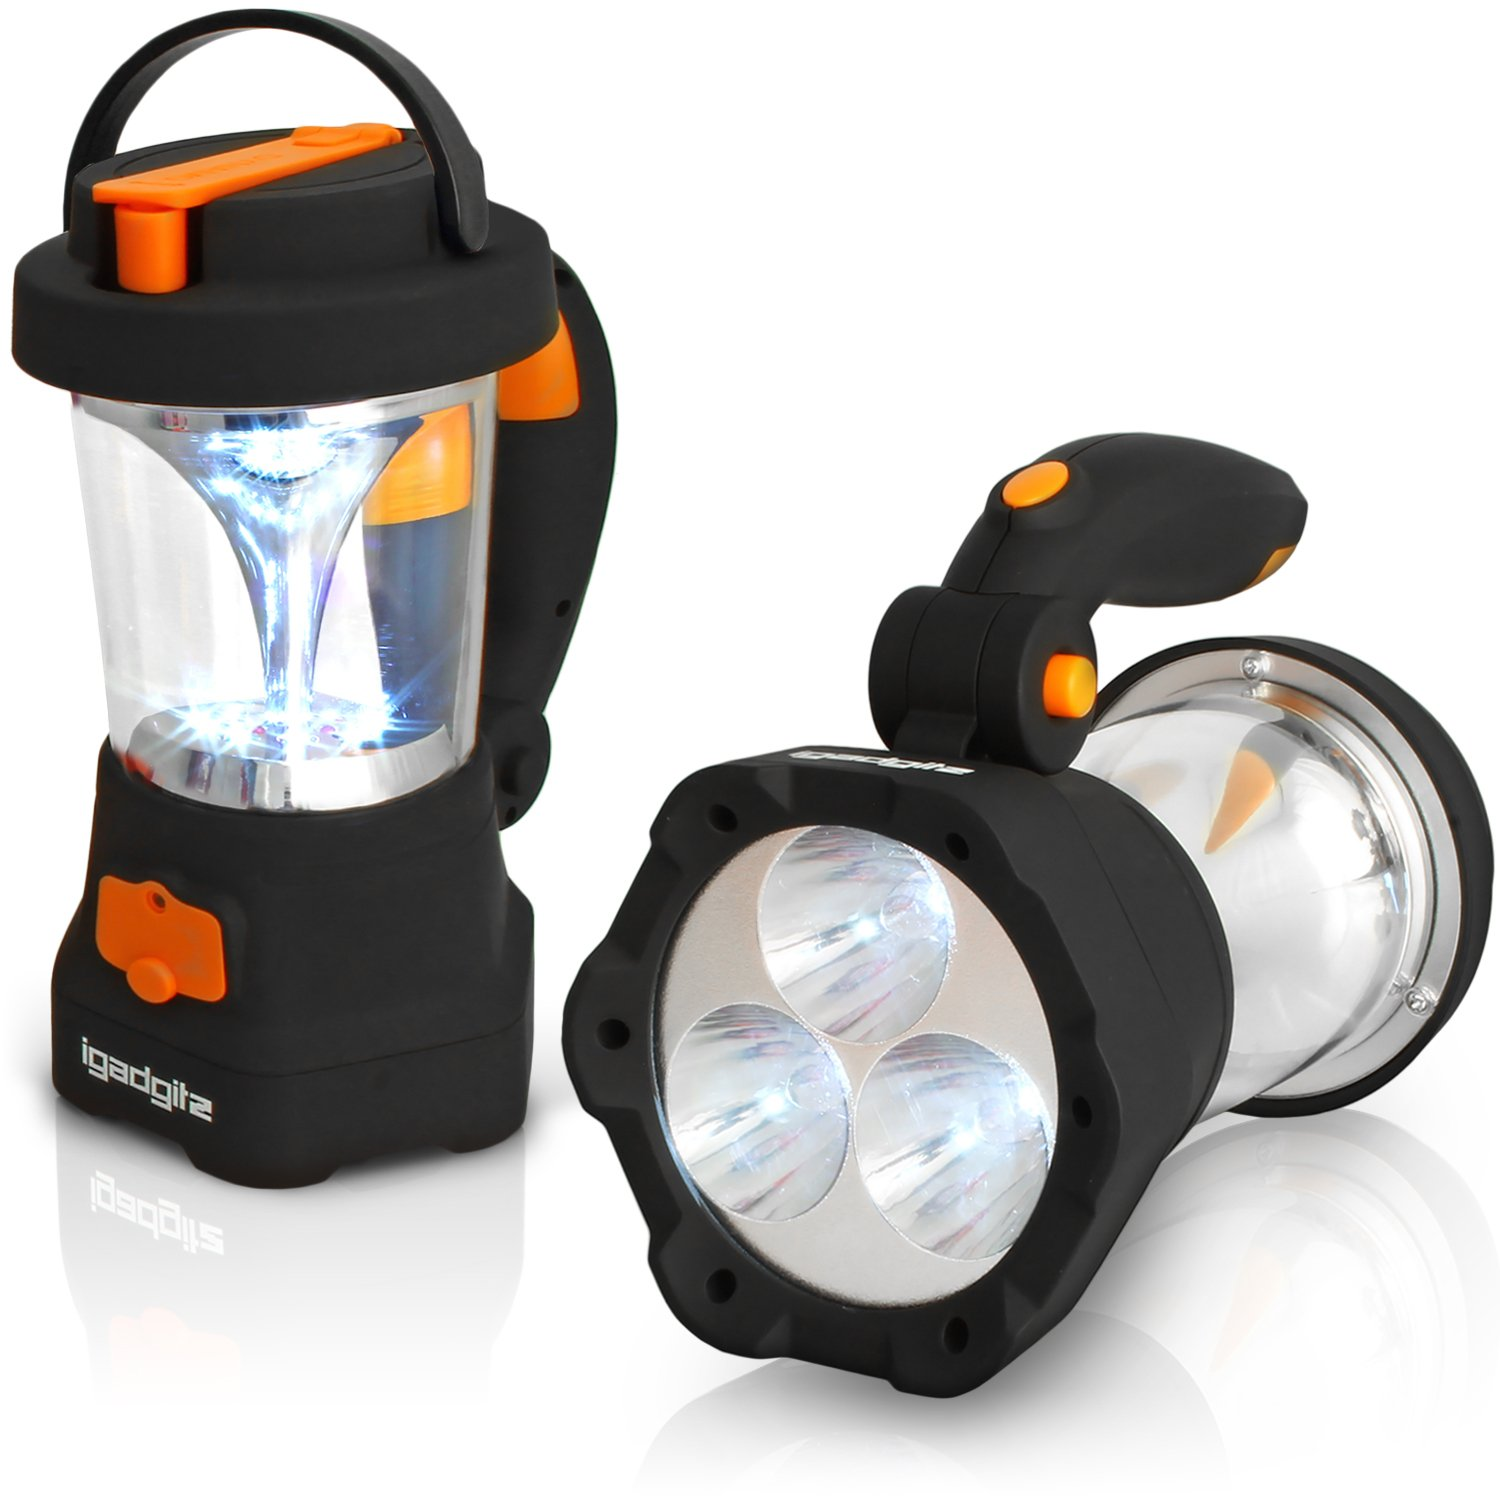 iGadgitz Xtra Lumin 4 in 1 Dynamo Rechargeable 3 LED Spotlight Torch & 10 LED Lantern + 1 Year Warranty by igadgitz